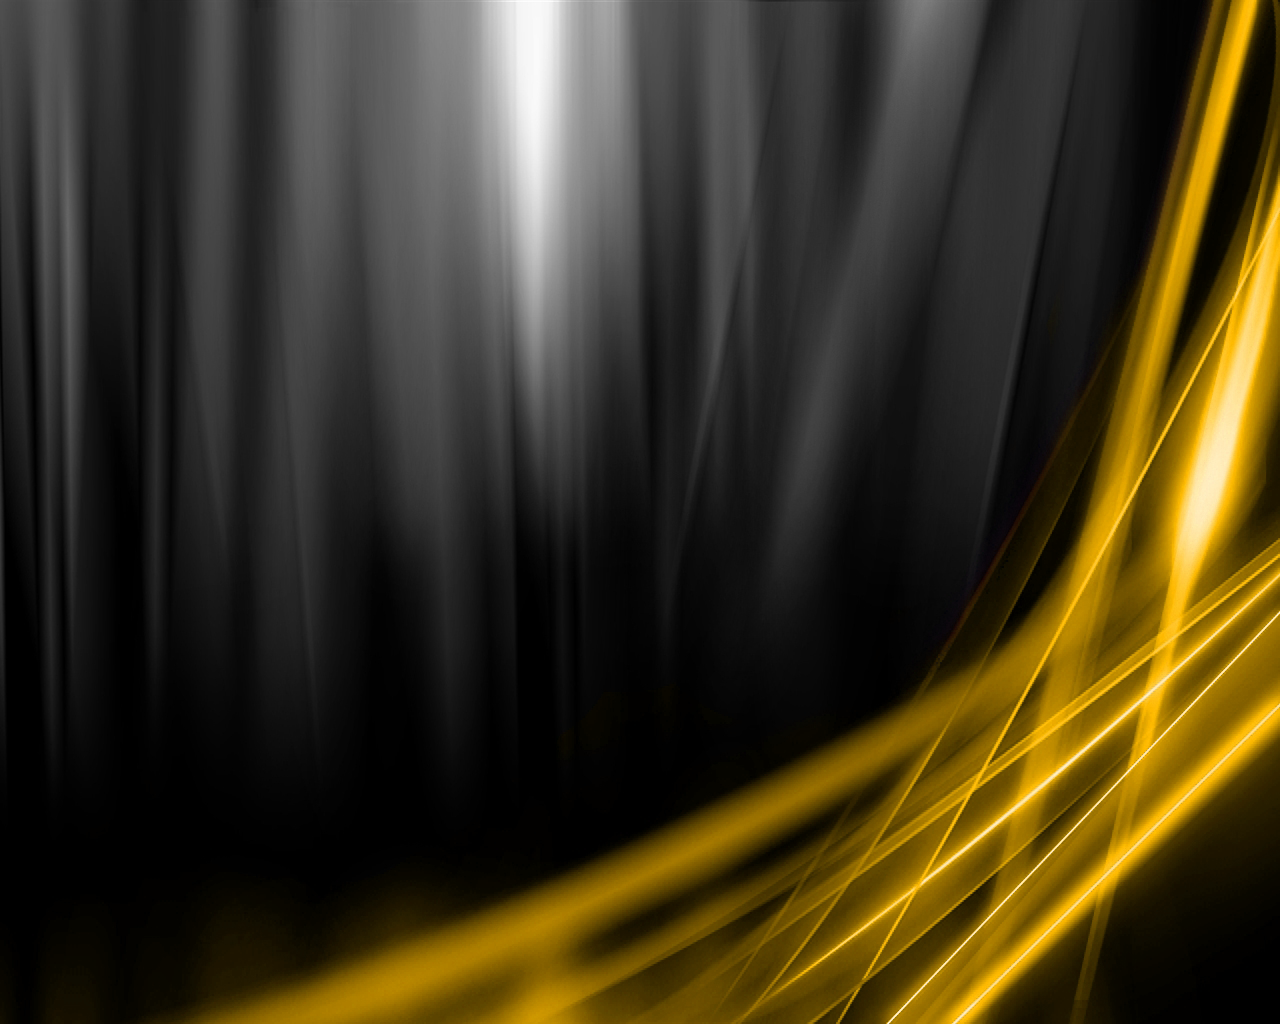 47 Black And Gold Hd Wallpaper On Wallpapersafari